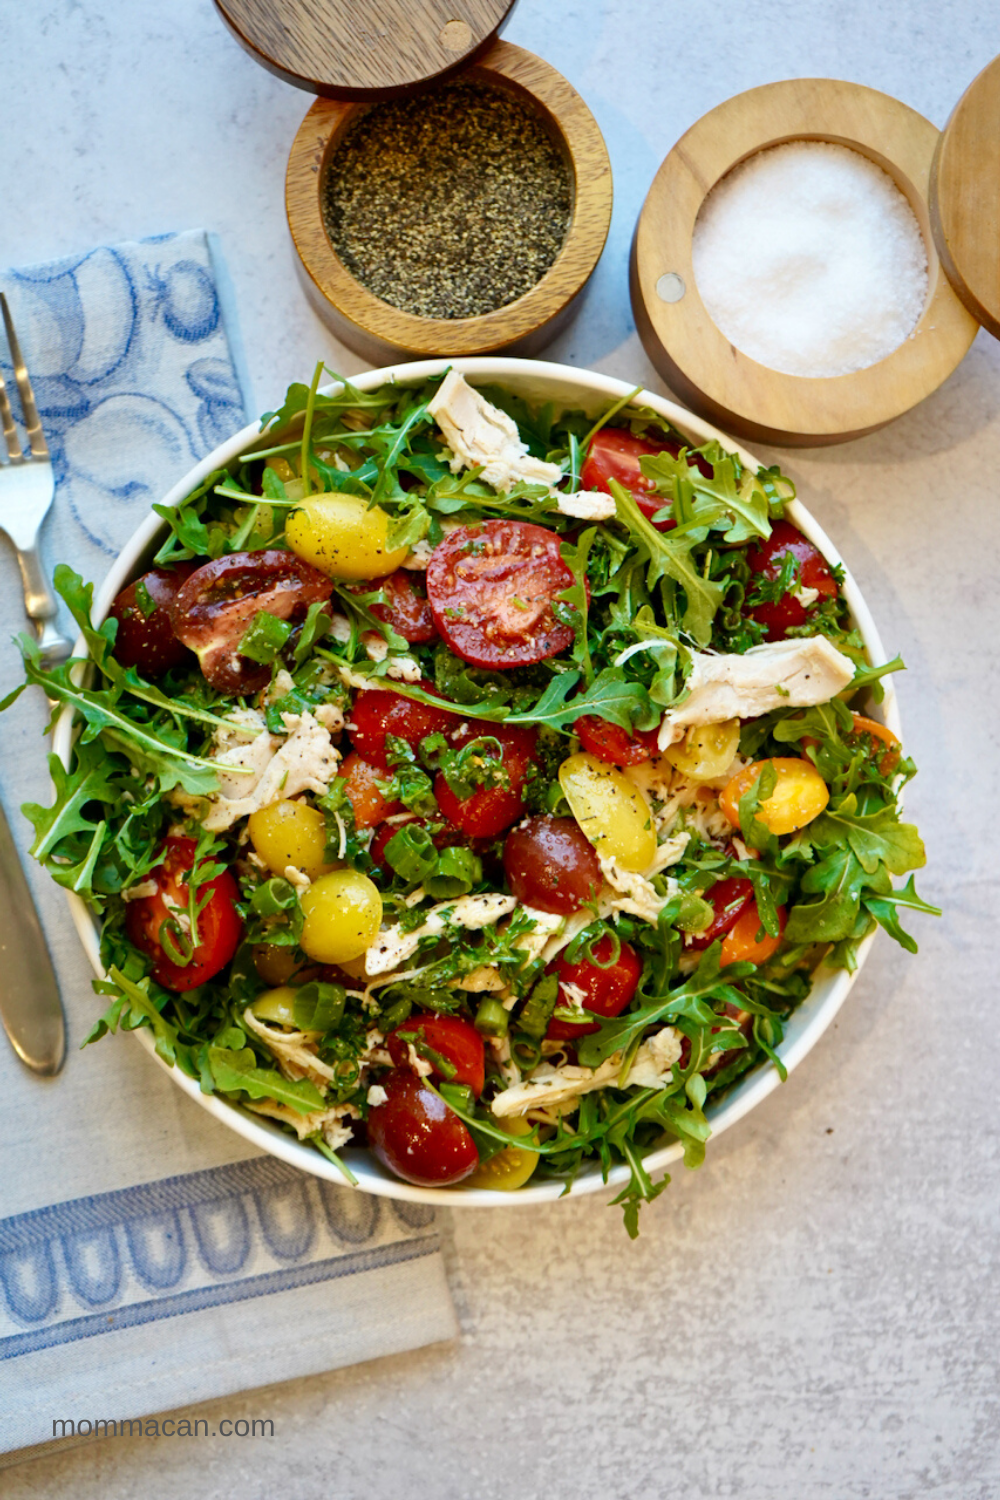 Tomato Herbs and Chicken Salad over Arugula